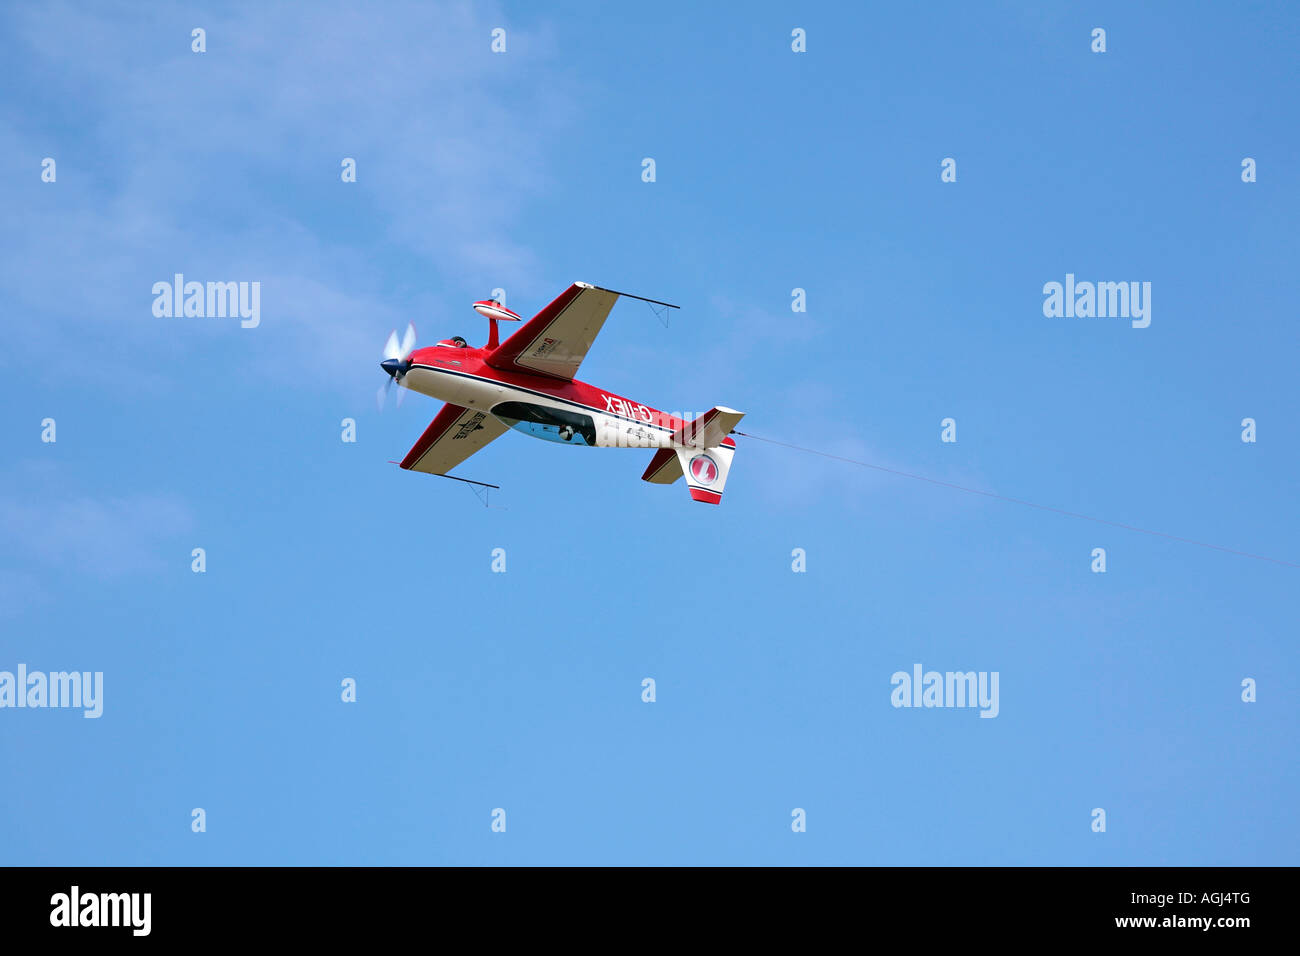 Extra 300L towplane with tow hook attached, performing aerial manoeuvre at Shoreham airshow, Shoreham airport, West Stock Photo